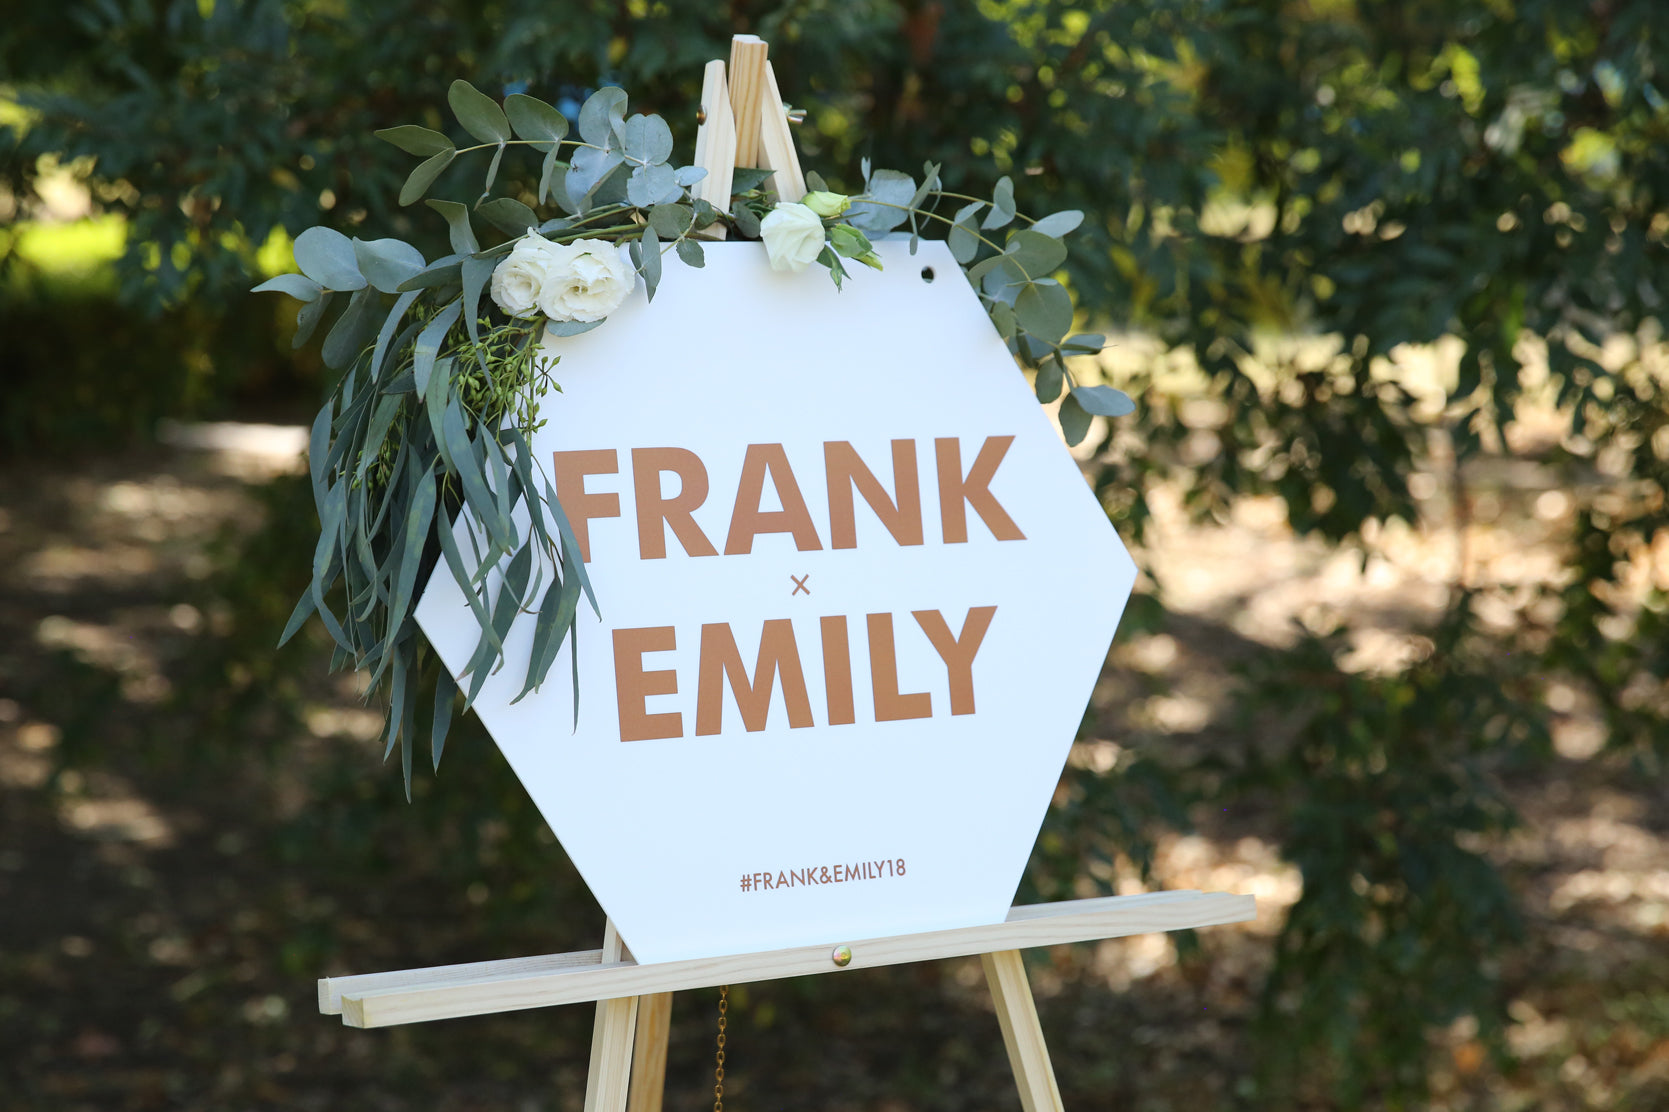 Statement style names wedding sign